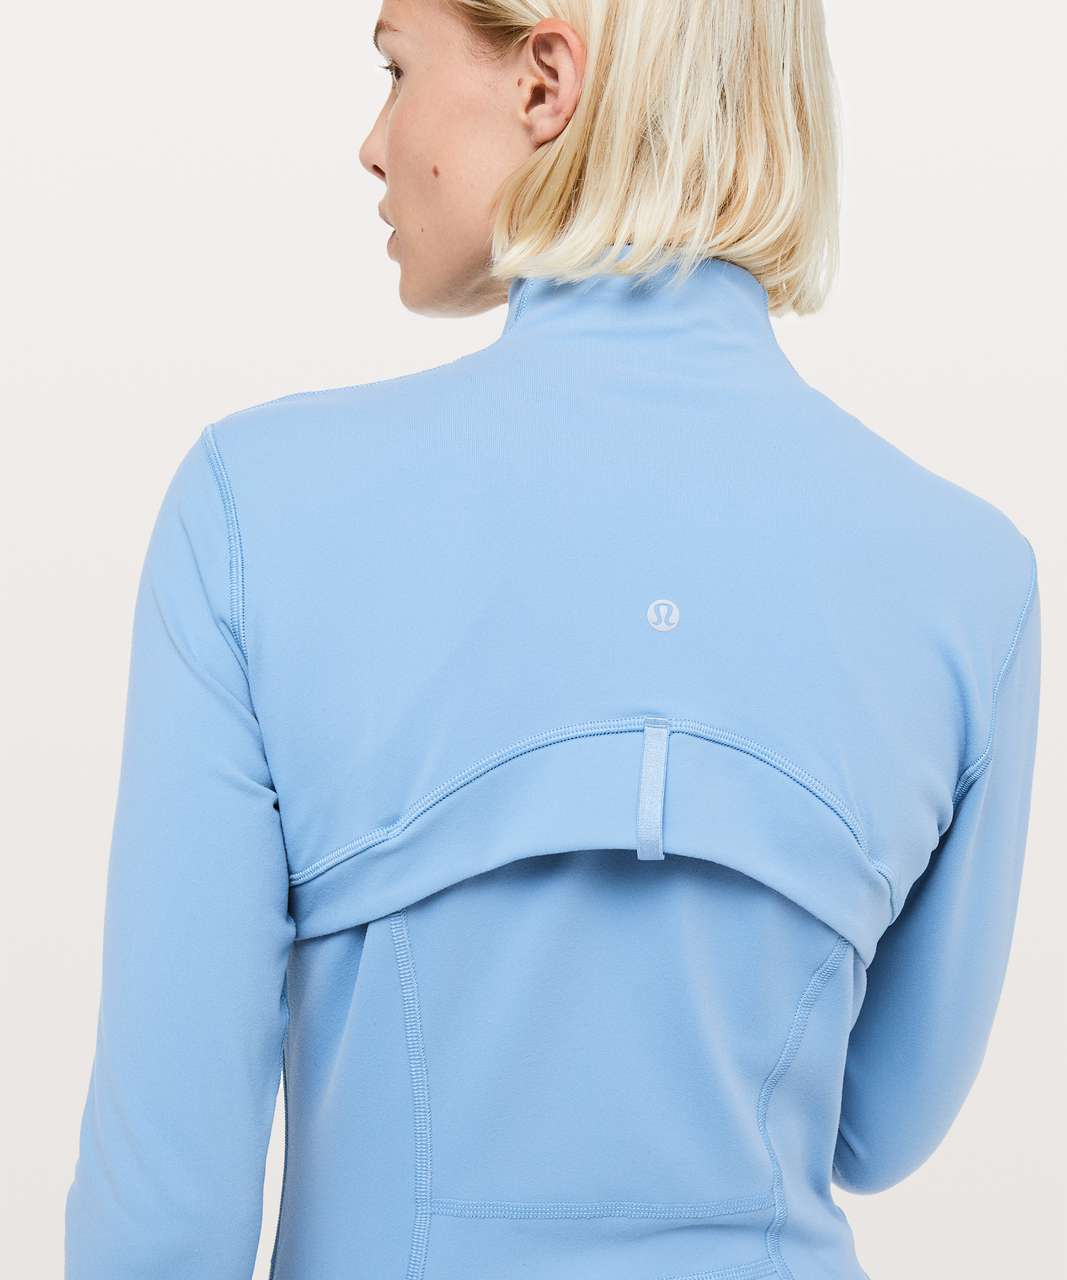 Lululemon Define Jacket - Cascade Blue